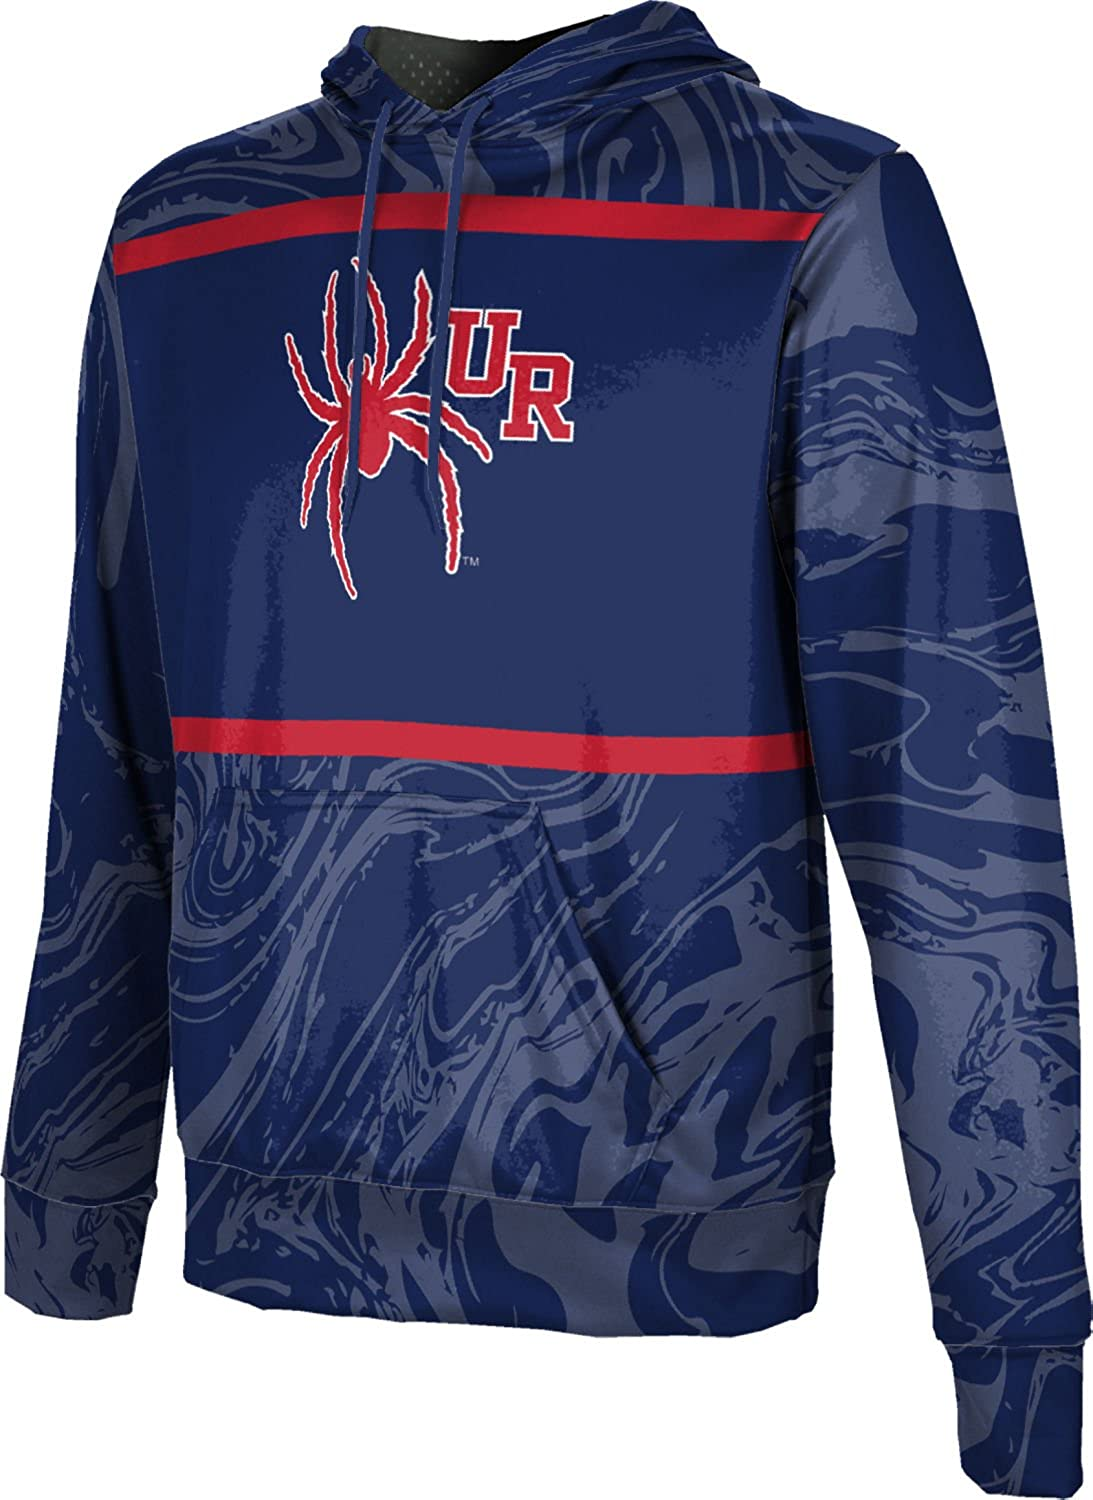 ProSphere University Limited price sale of Columbus Mall Richmond Boys' Pullover S School Hoodie